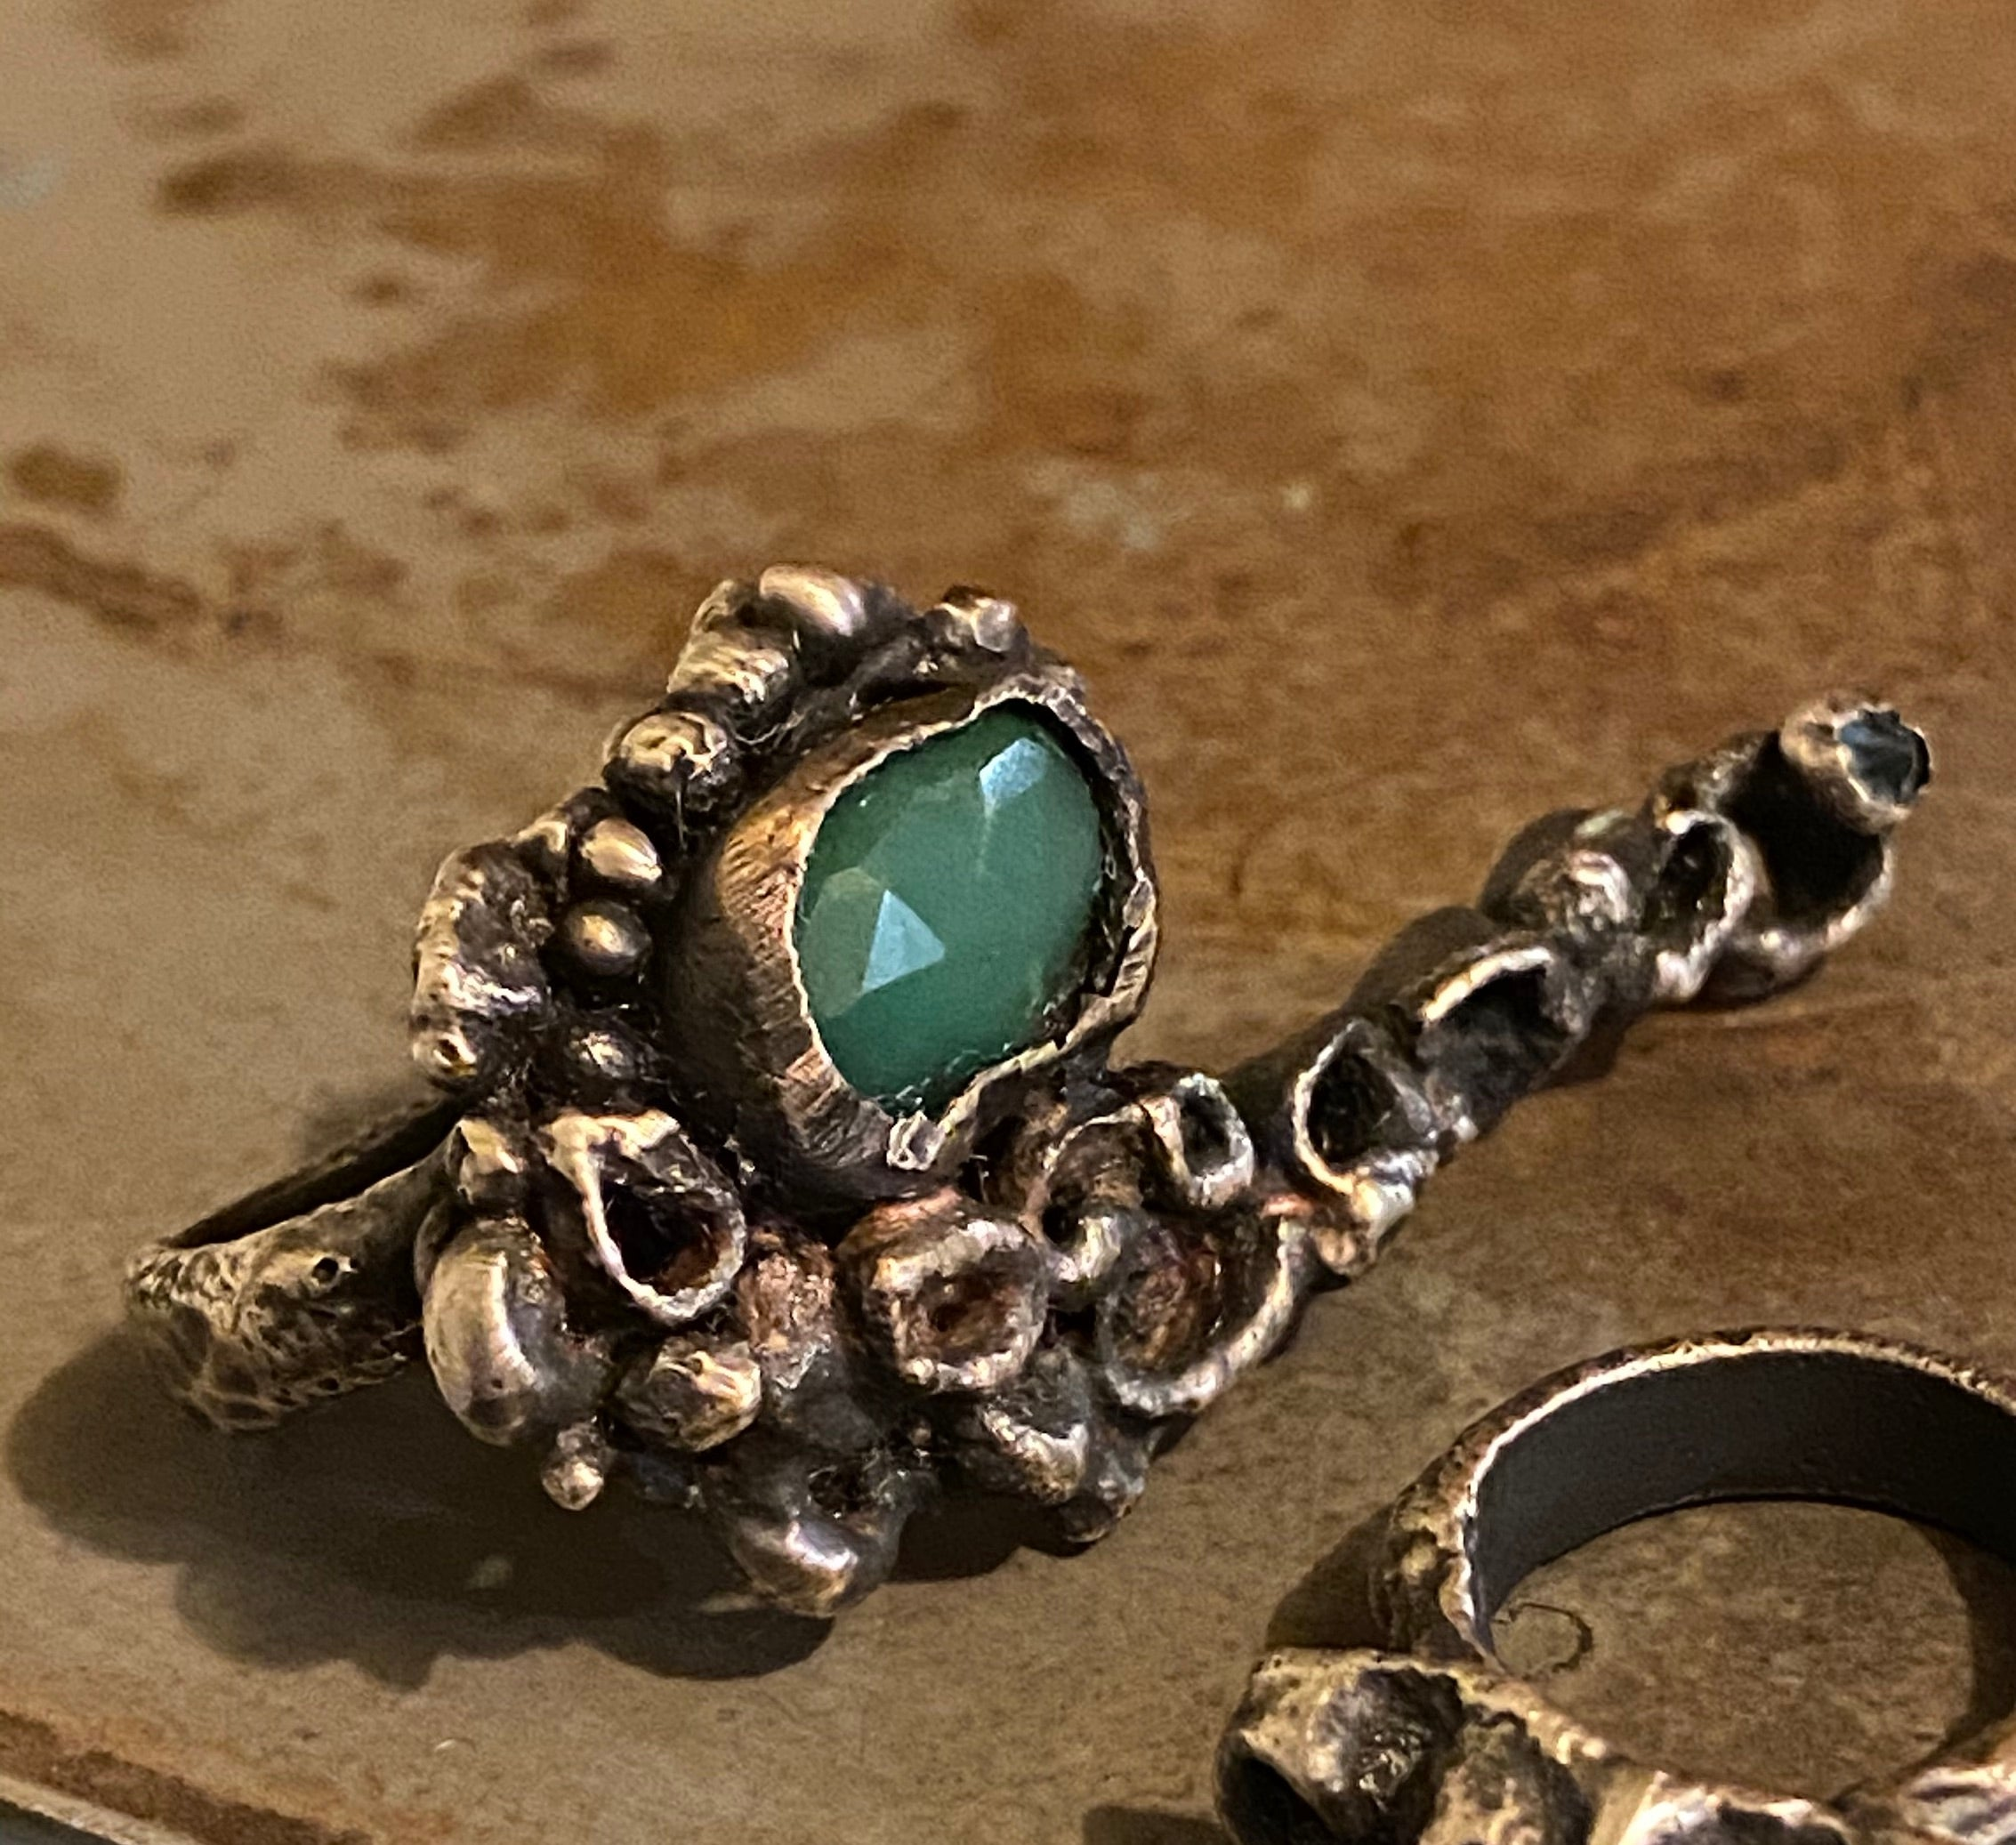 wasp nest with chrysoprase and blue topaz